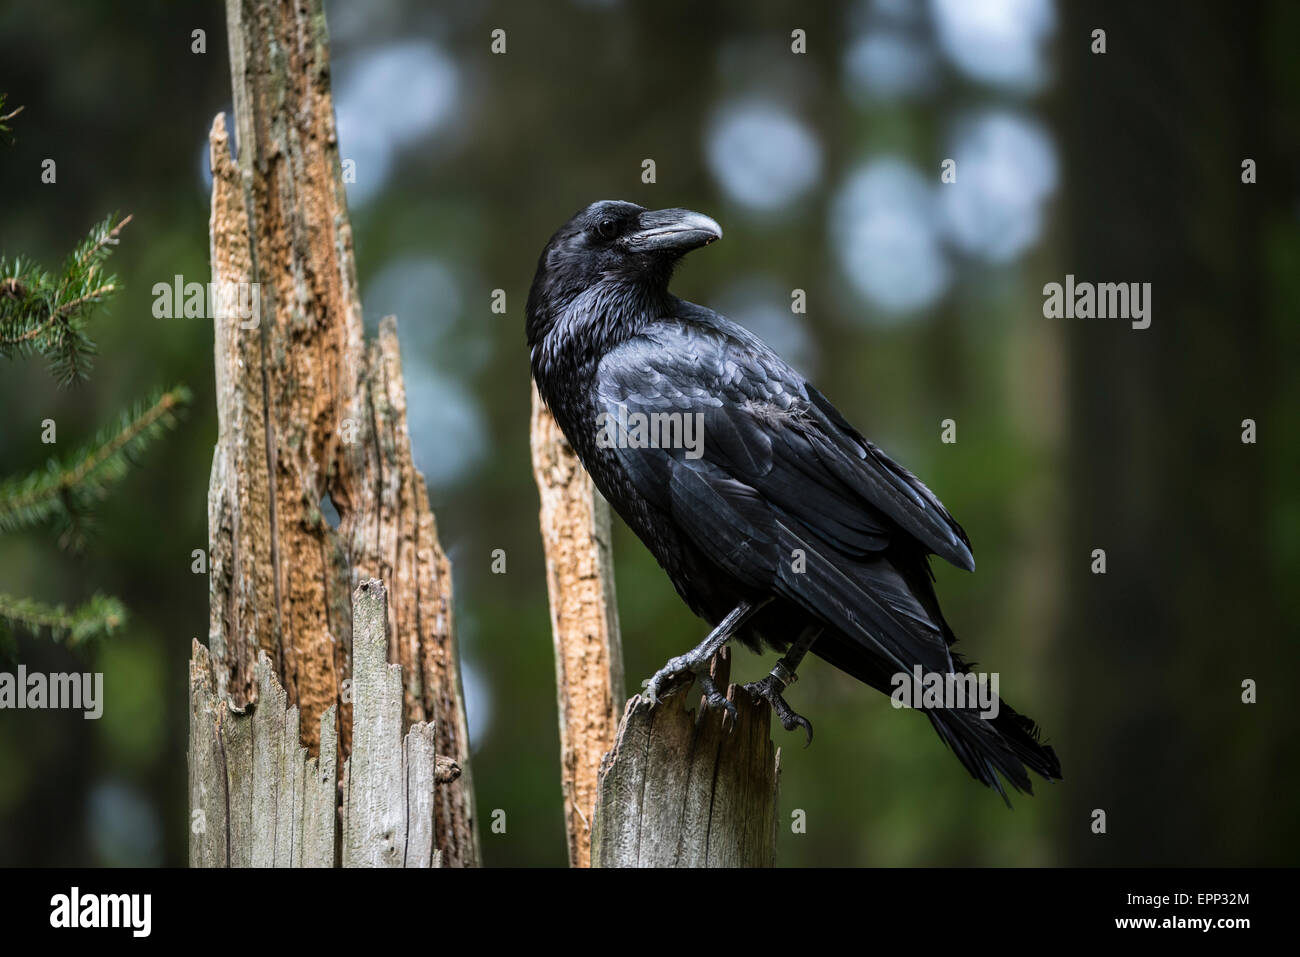 Common raven / northern raven (Corvus corax) perched on tree stump in forest - Stock Image